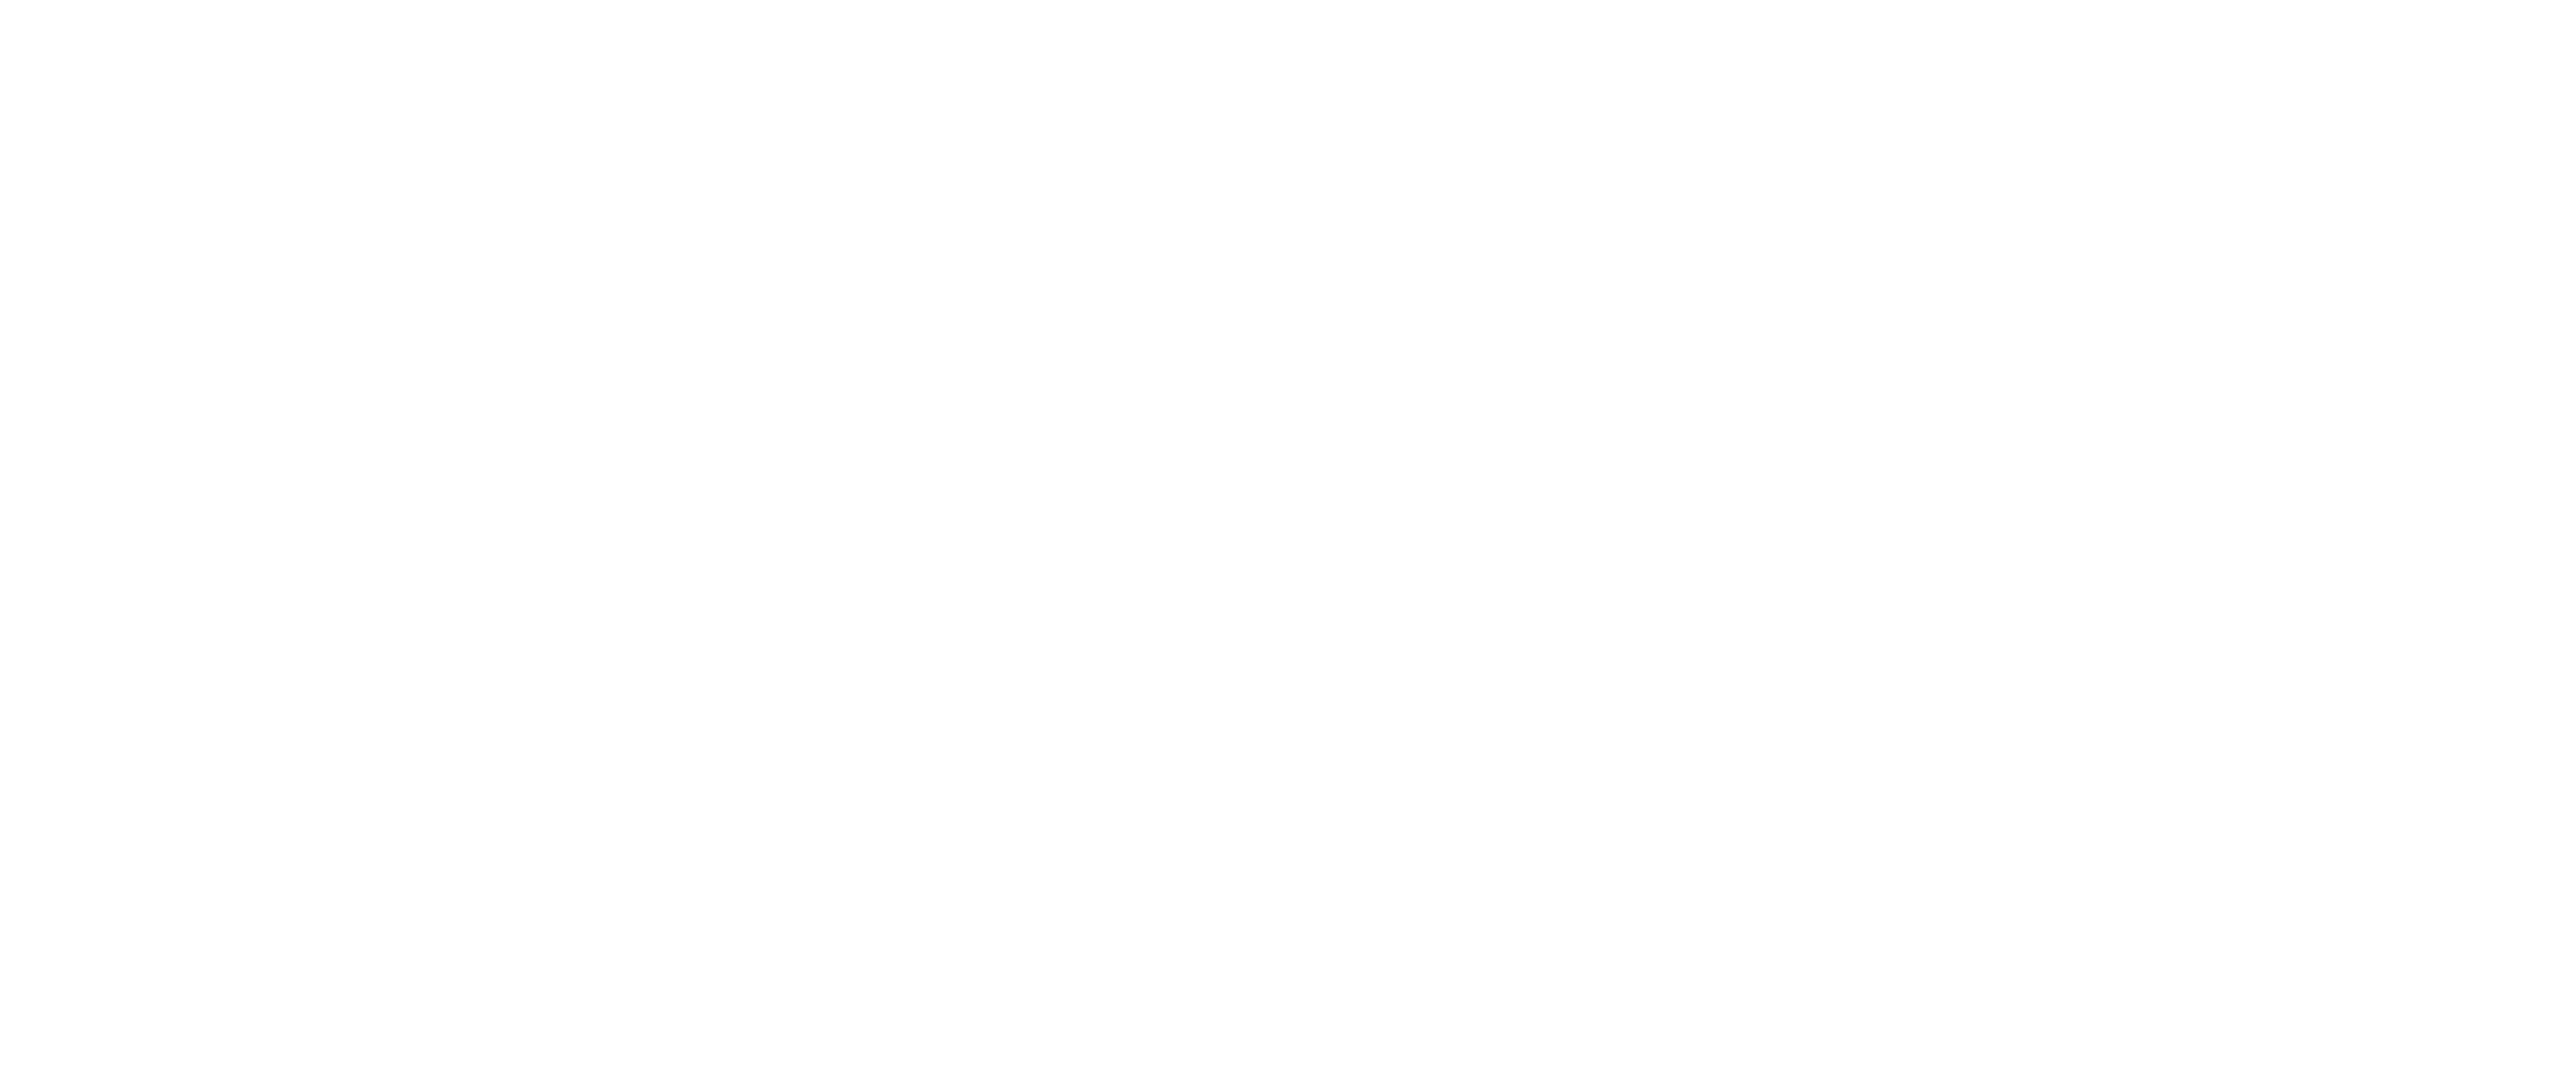 8000x3340 Collection Of Free Lace Vector Band. Download On Ubisafe